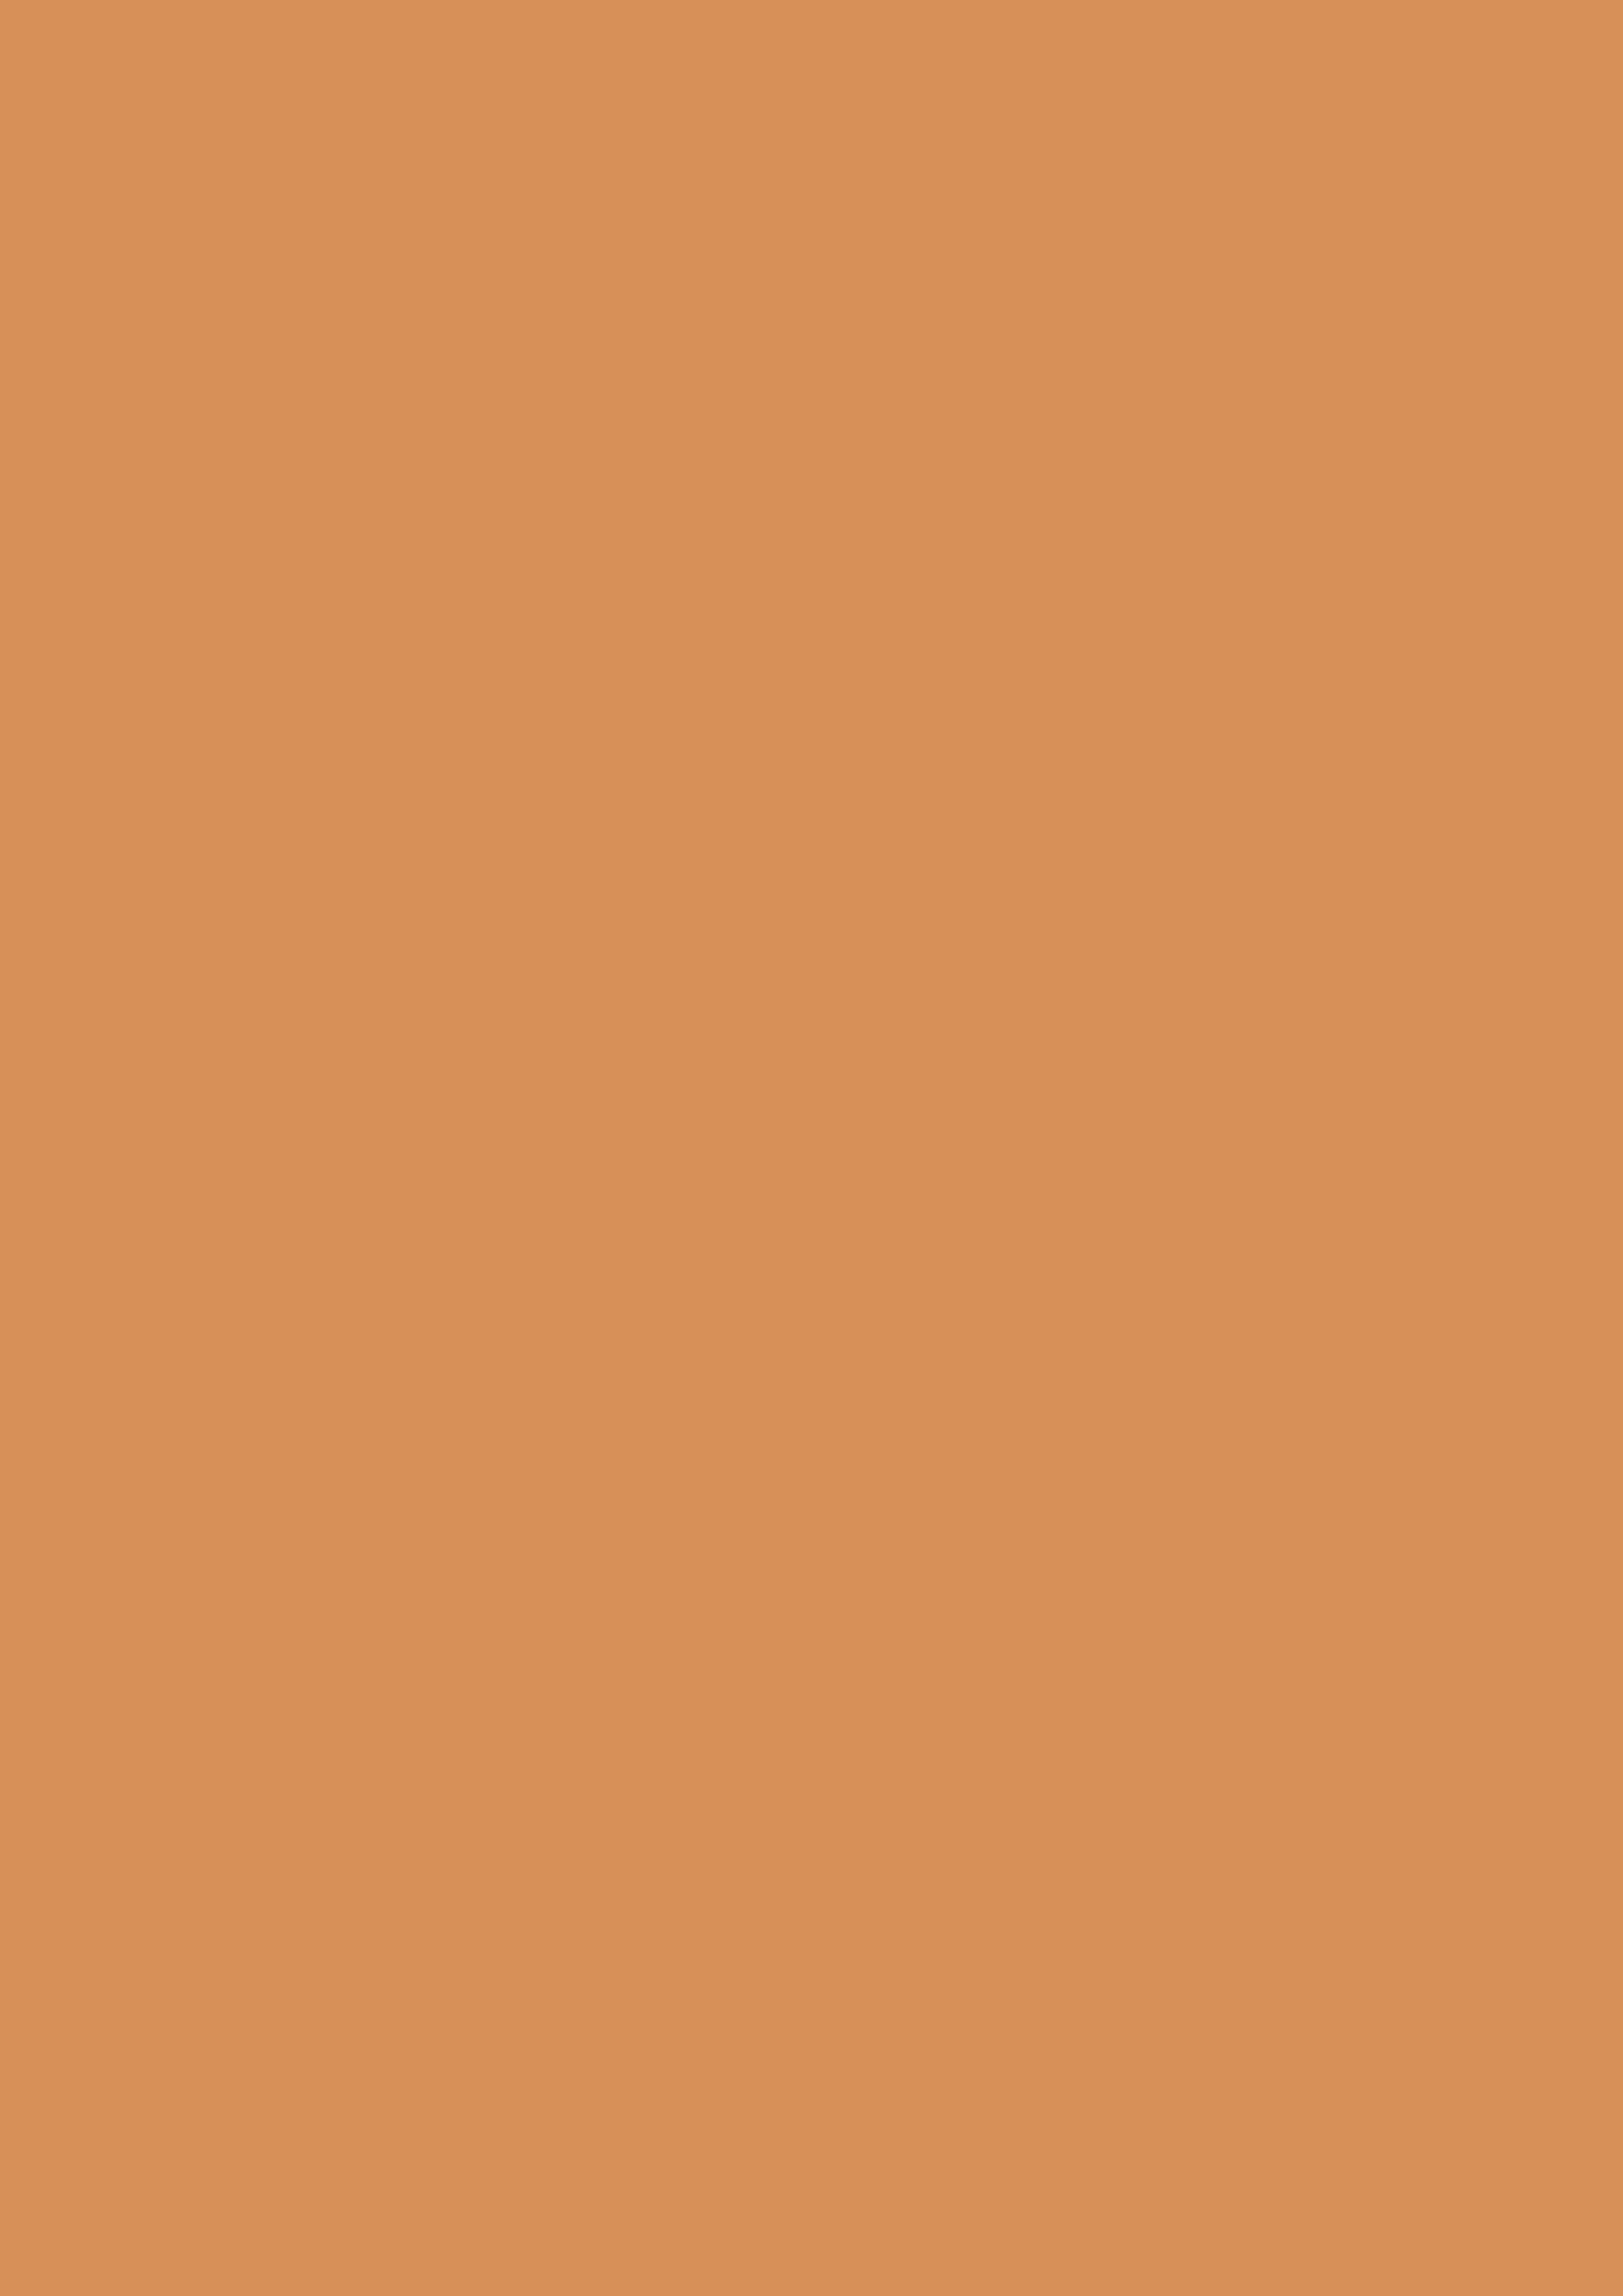 2480x3508 Persian Orange Solid Color Background